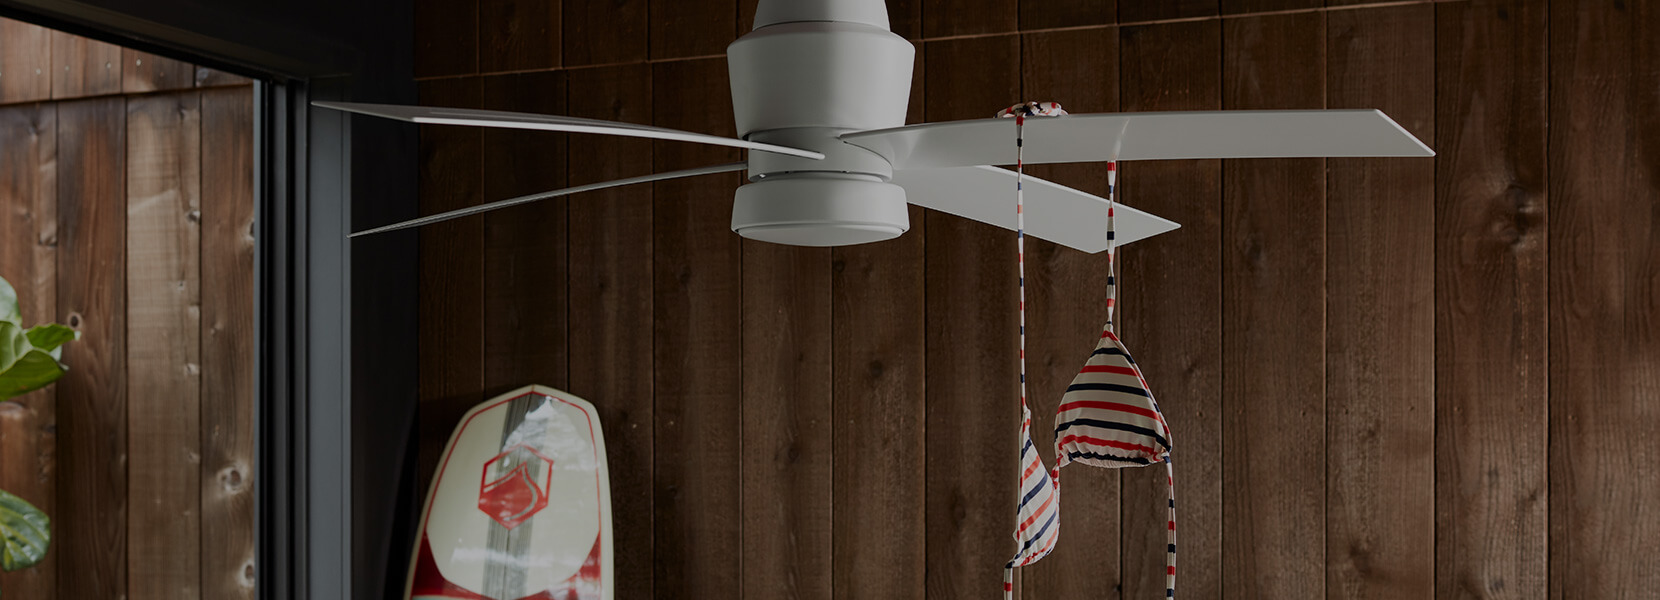 Stori Modern Outdoor Ceiling Fan Prologue Collection